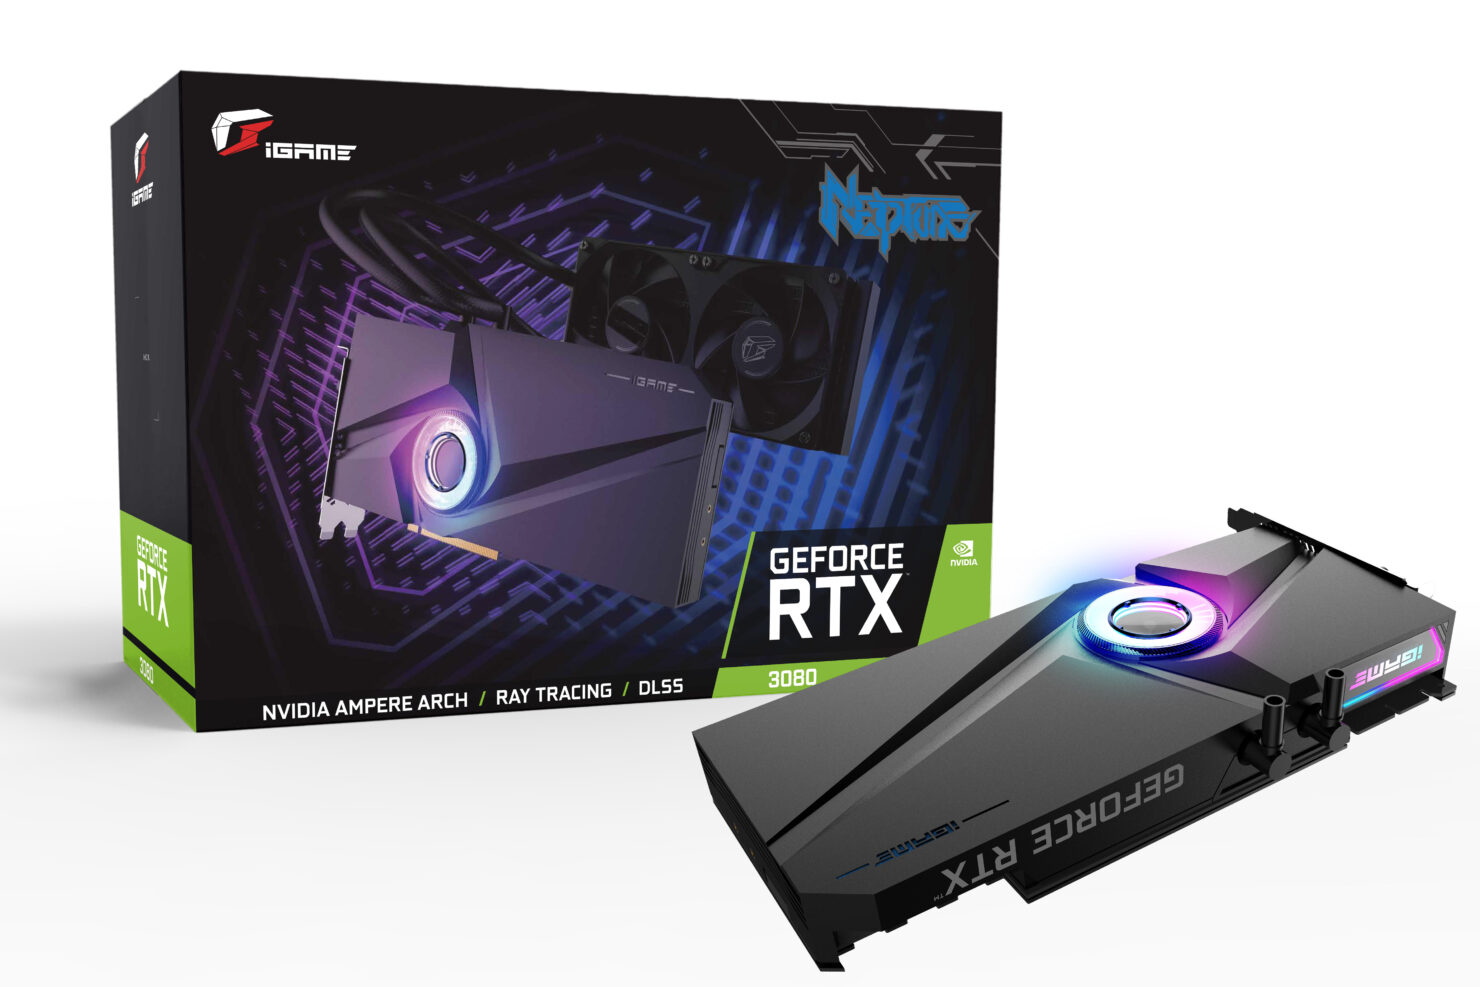 colorful-igame-geforce-rtx-3080-neptune-oc-10g-v-1-125f4e637a3a5c62-08213265